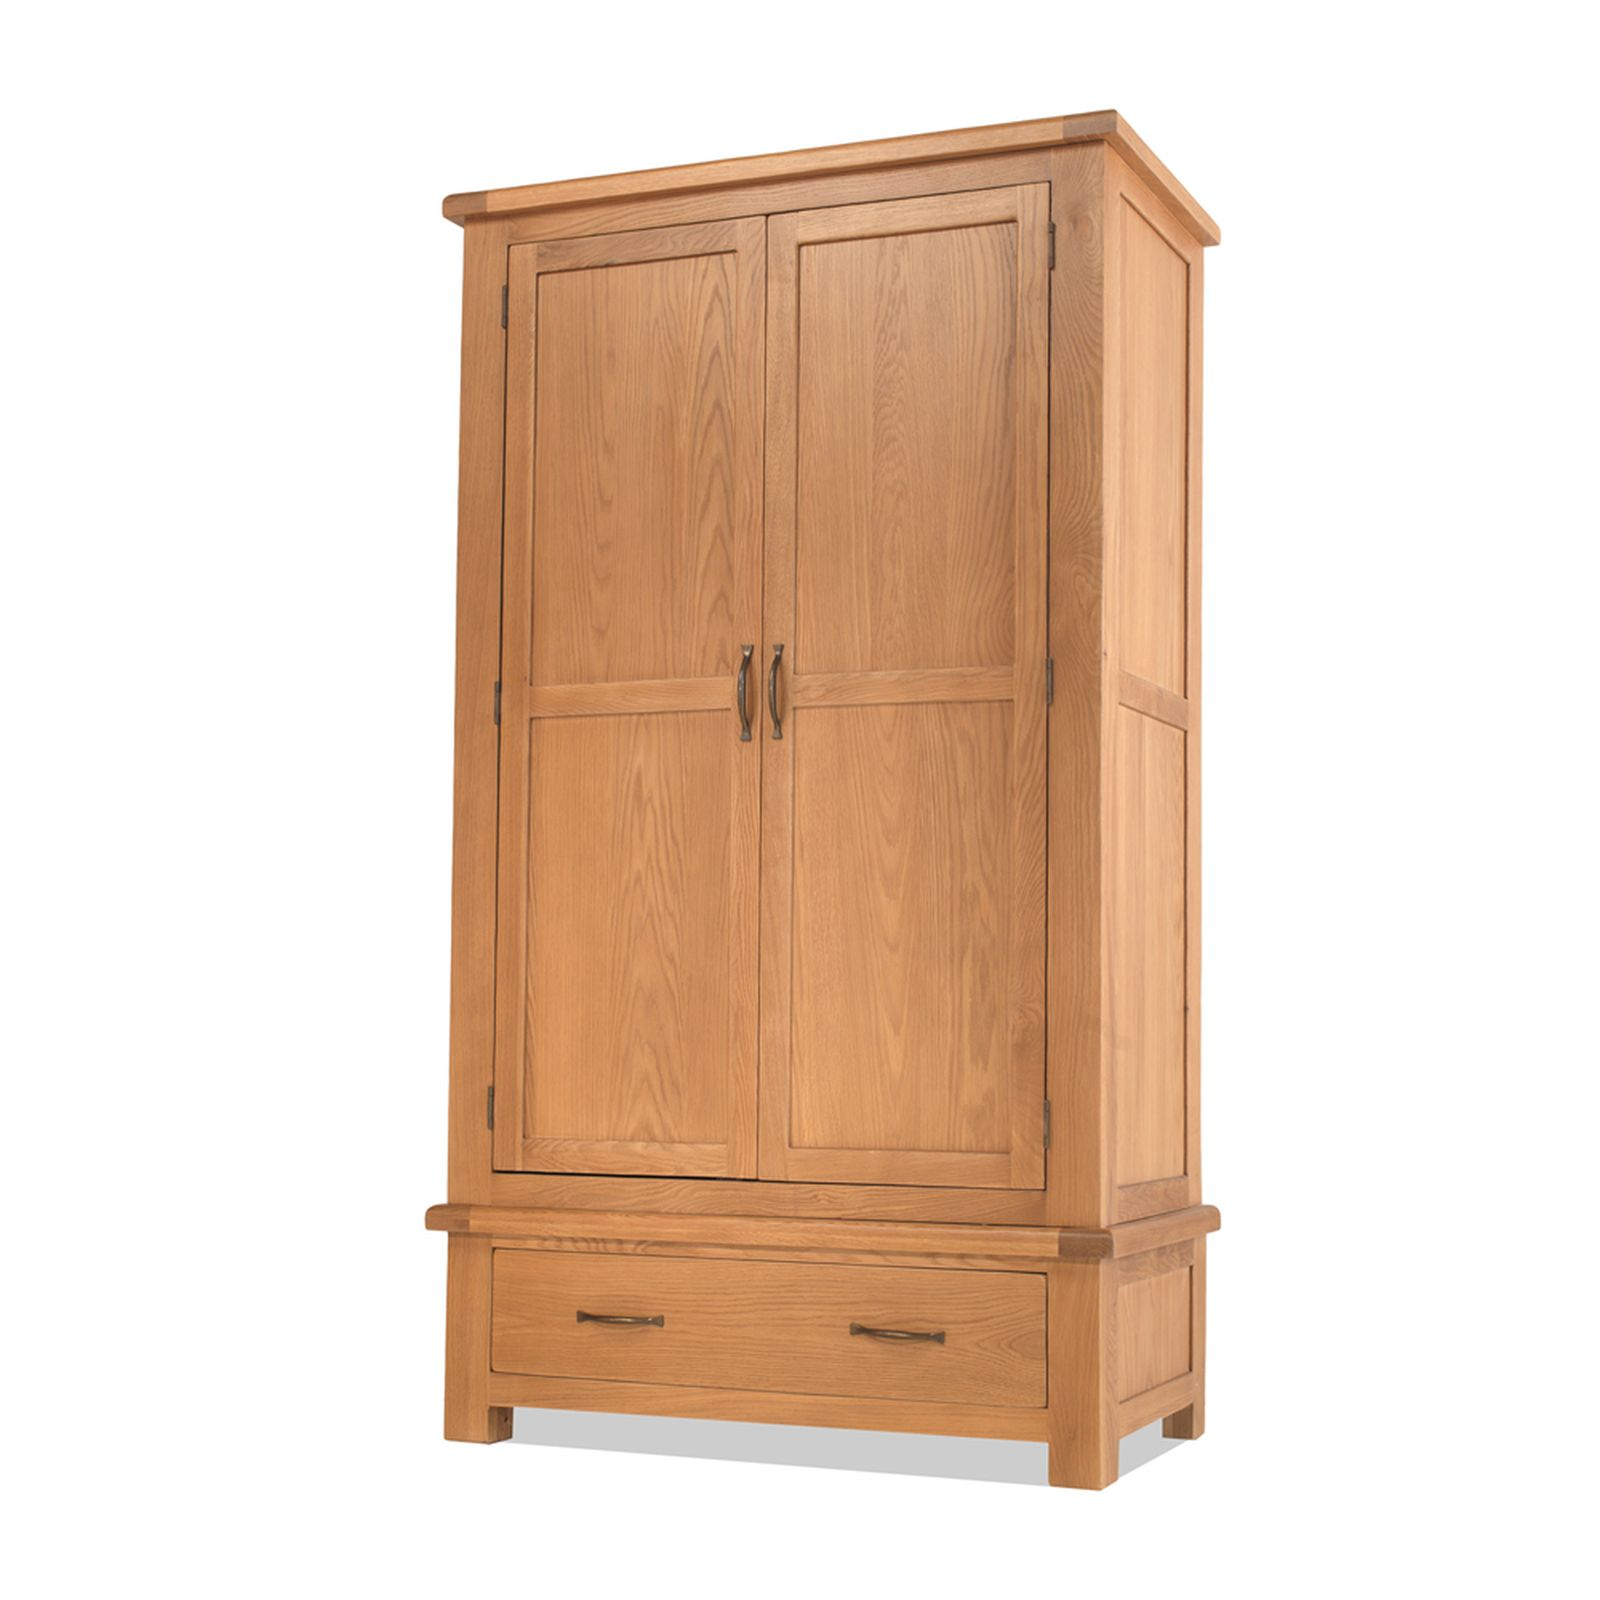 Galway solid oak bedroom furniture double wardrobe with for Oak bedroom furniture